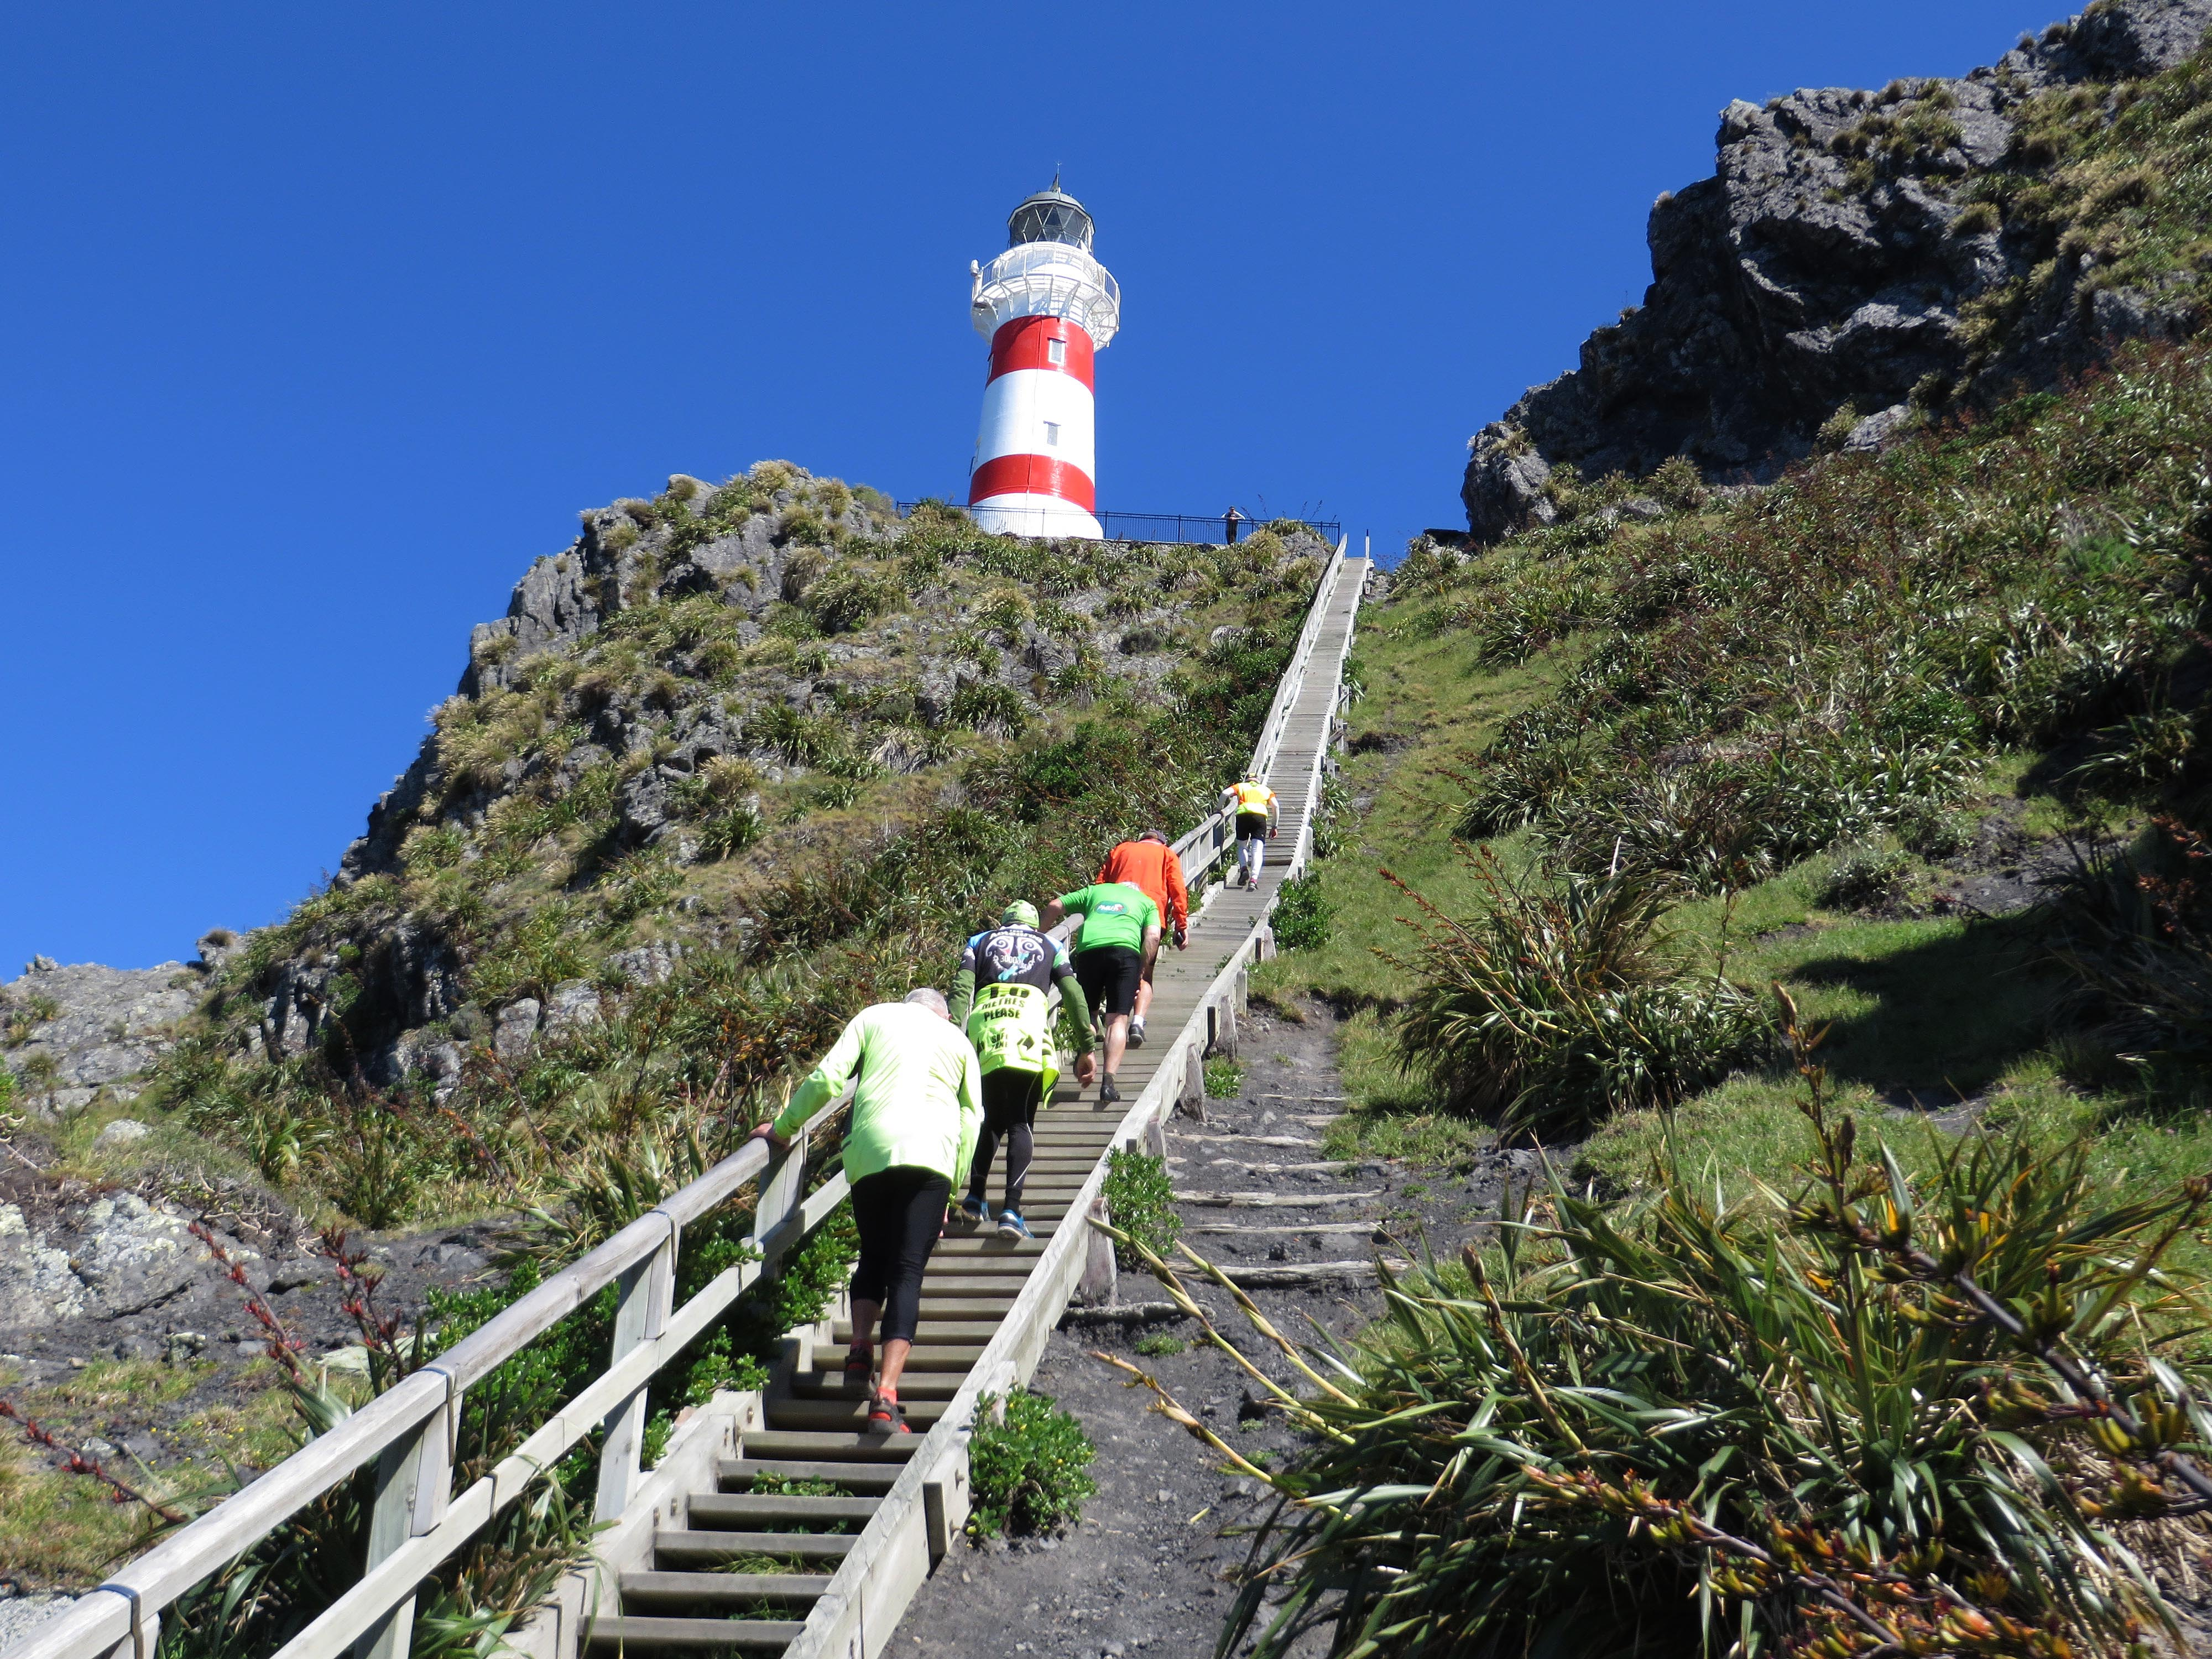 Climbing to the lighthouse